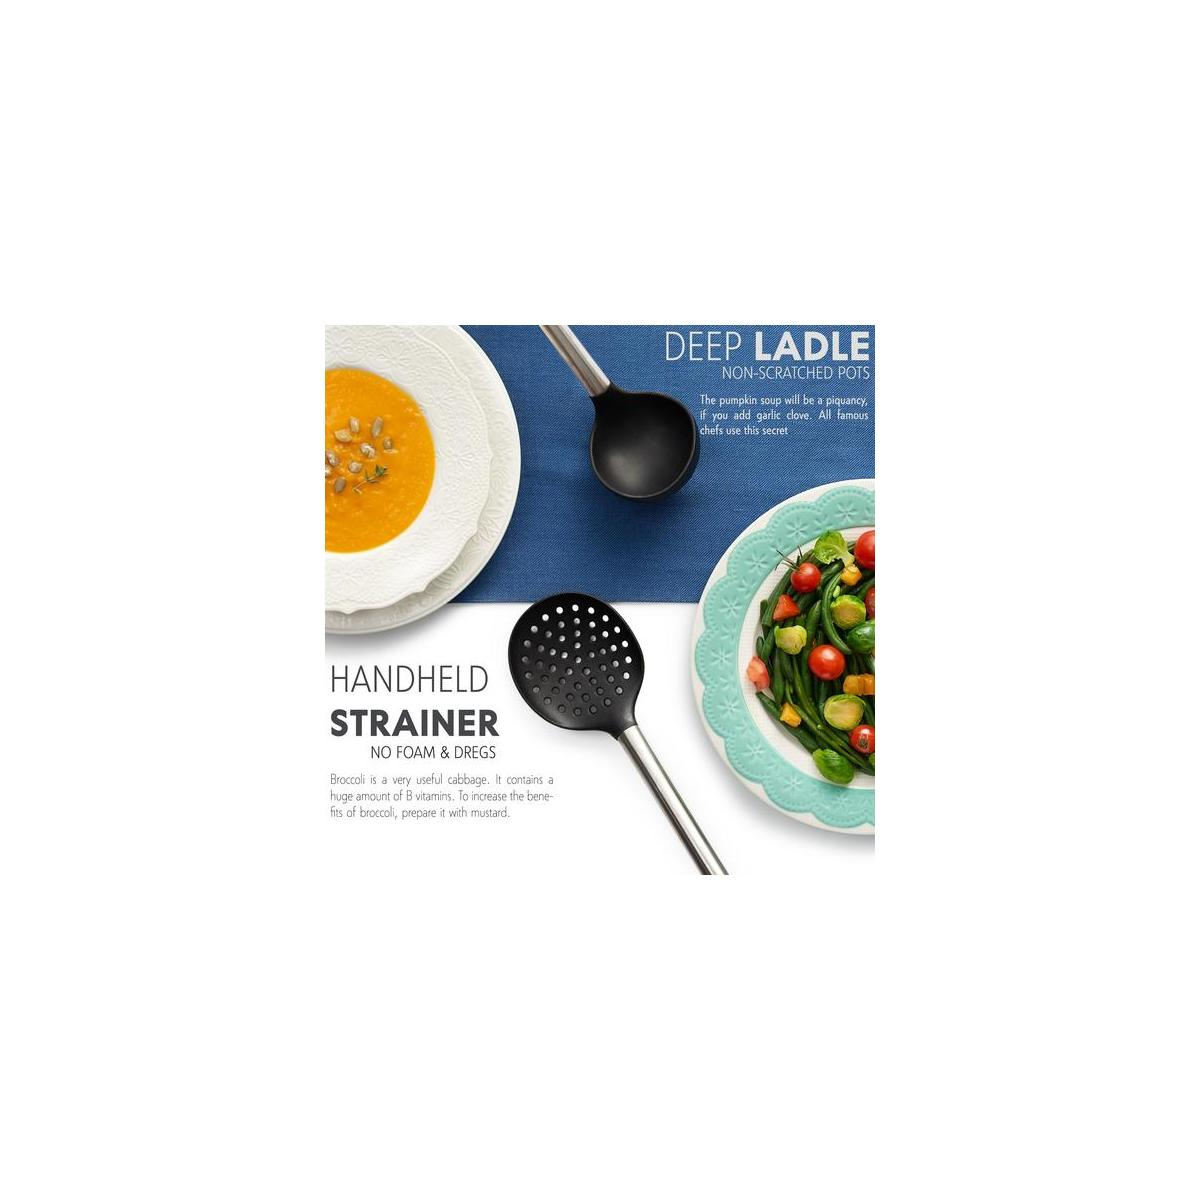 Silicone Cooking Kitchen Utensils - 18-Piece Big Set - Stainless Steel & Silicon Ladle, Spatulas, Spoons, Server, Brush, Measuring Cups, Whisk, Strainer, Tongs - Heat Resistant for Non-Stick Cookware